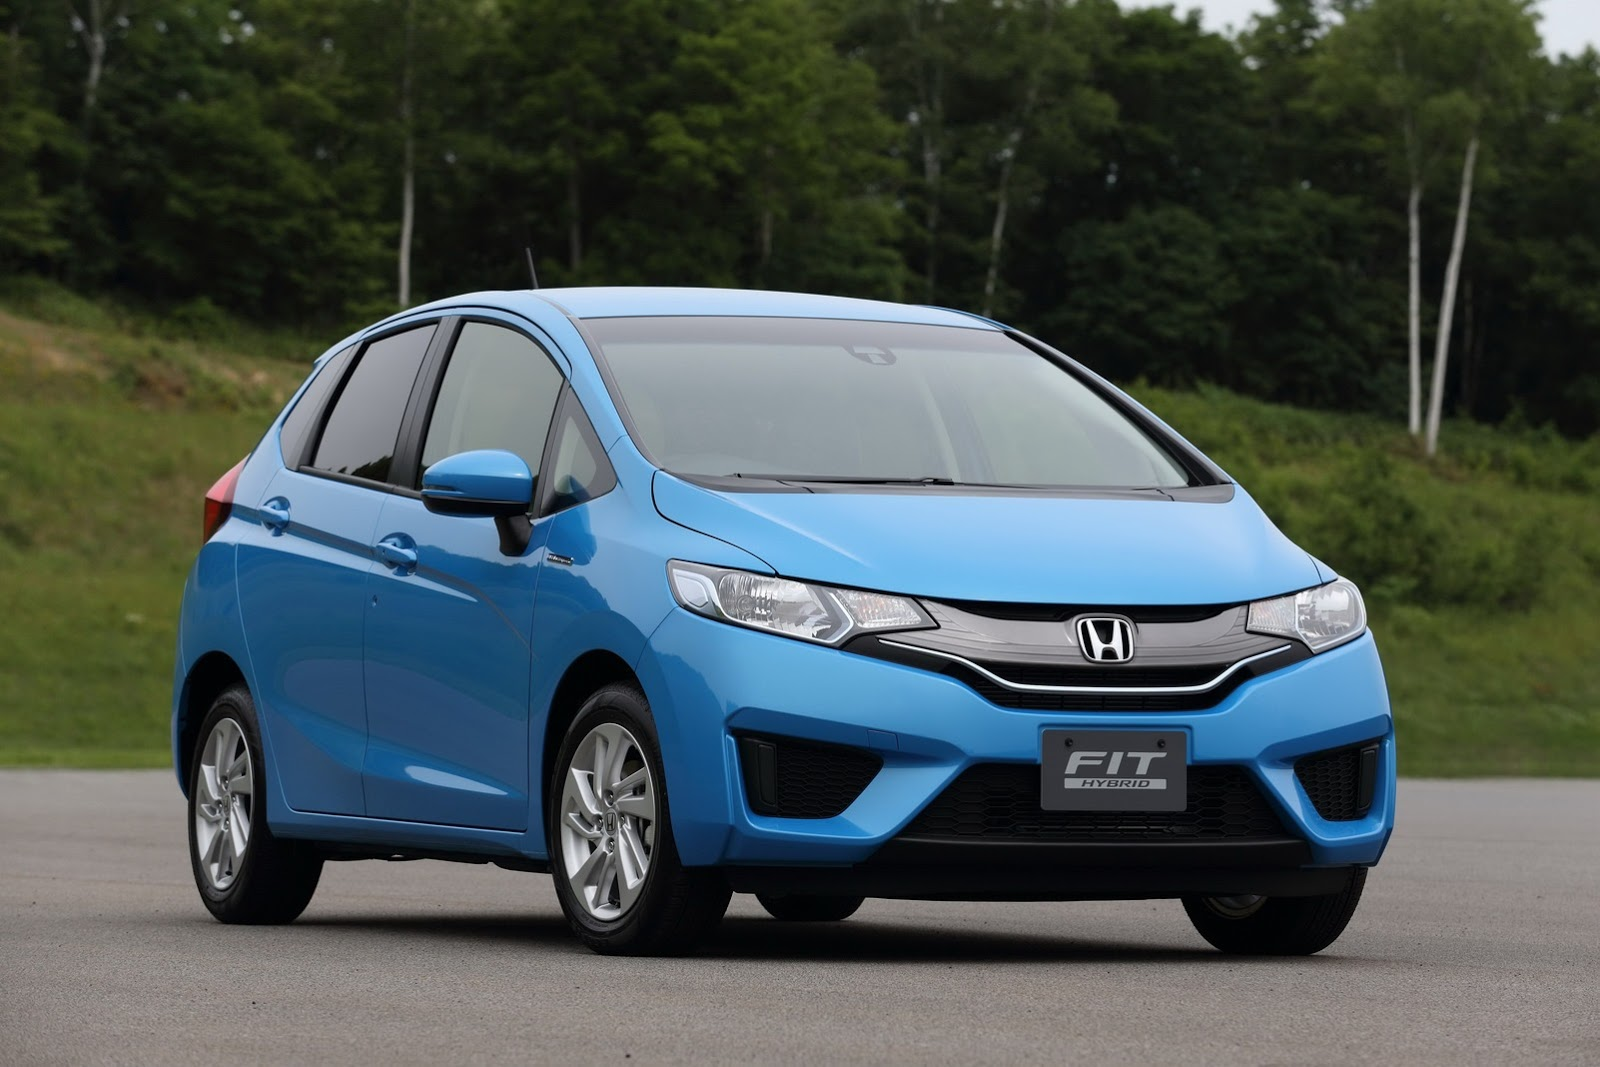 New 2014 Honda Jazz Photo Gallery Car Gallery Premium